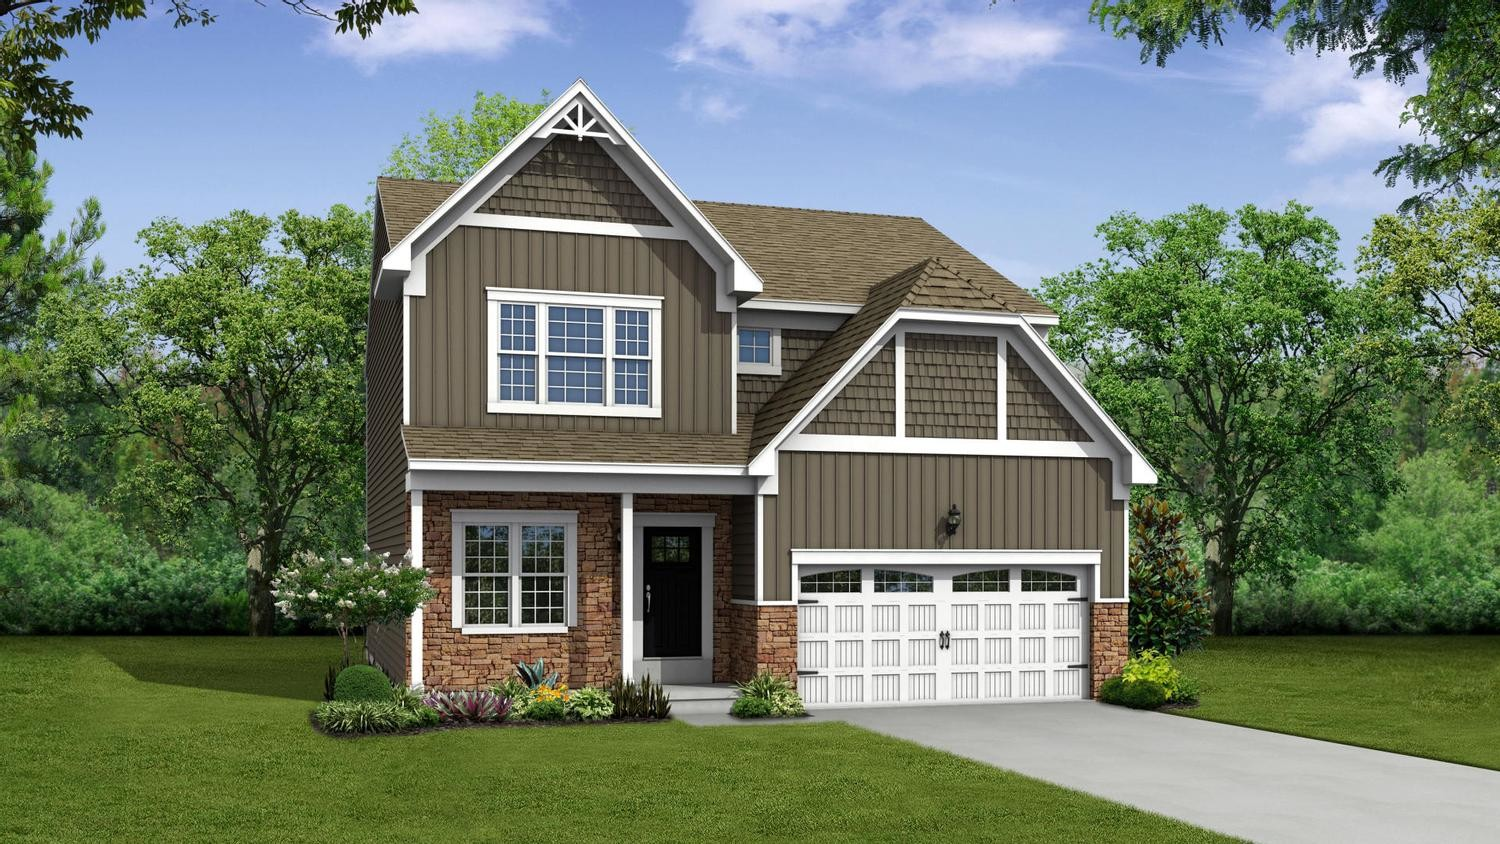 Ready To Build Home In Ashton Crossing Community